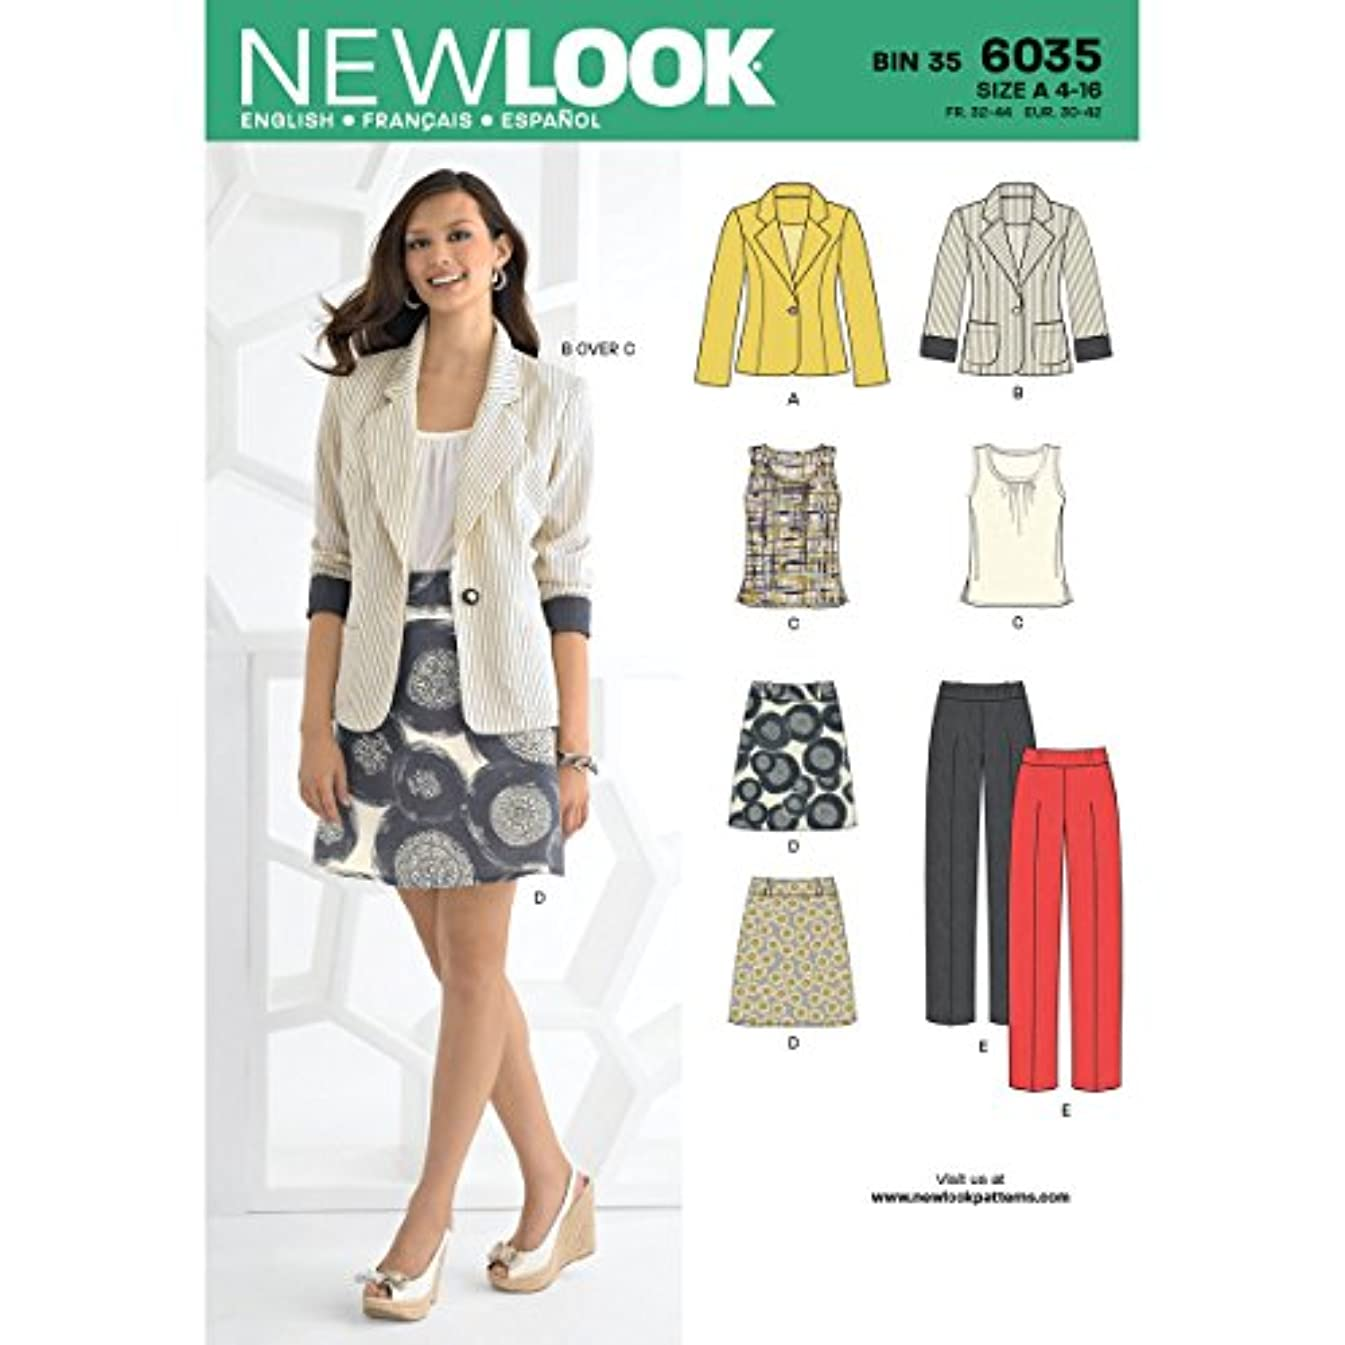 New Look sewing pattern 6034: Misses' Separates size A (8-10-12-14-16-18)